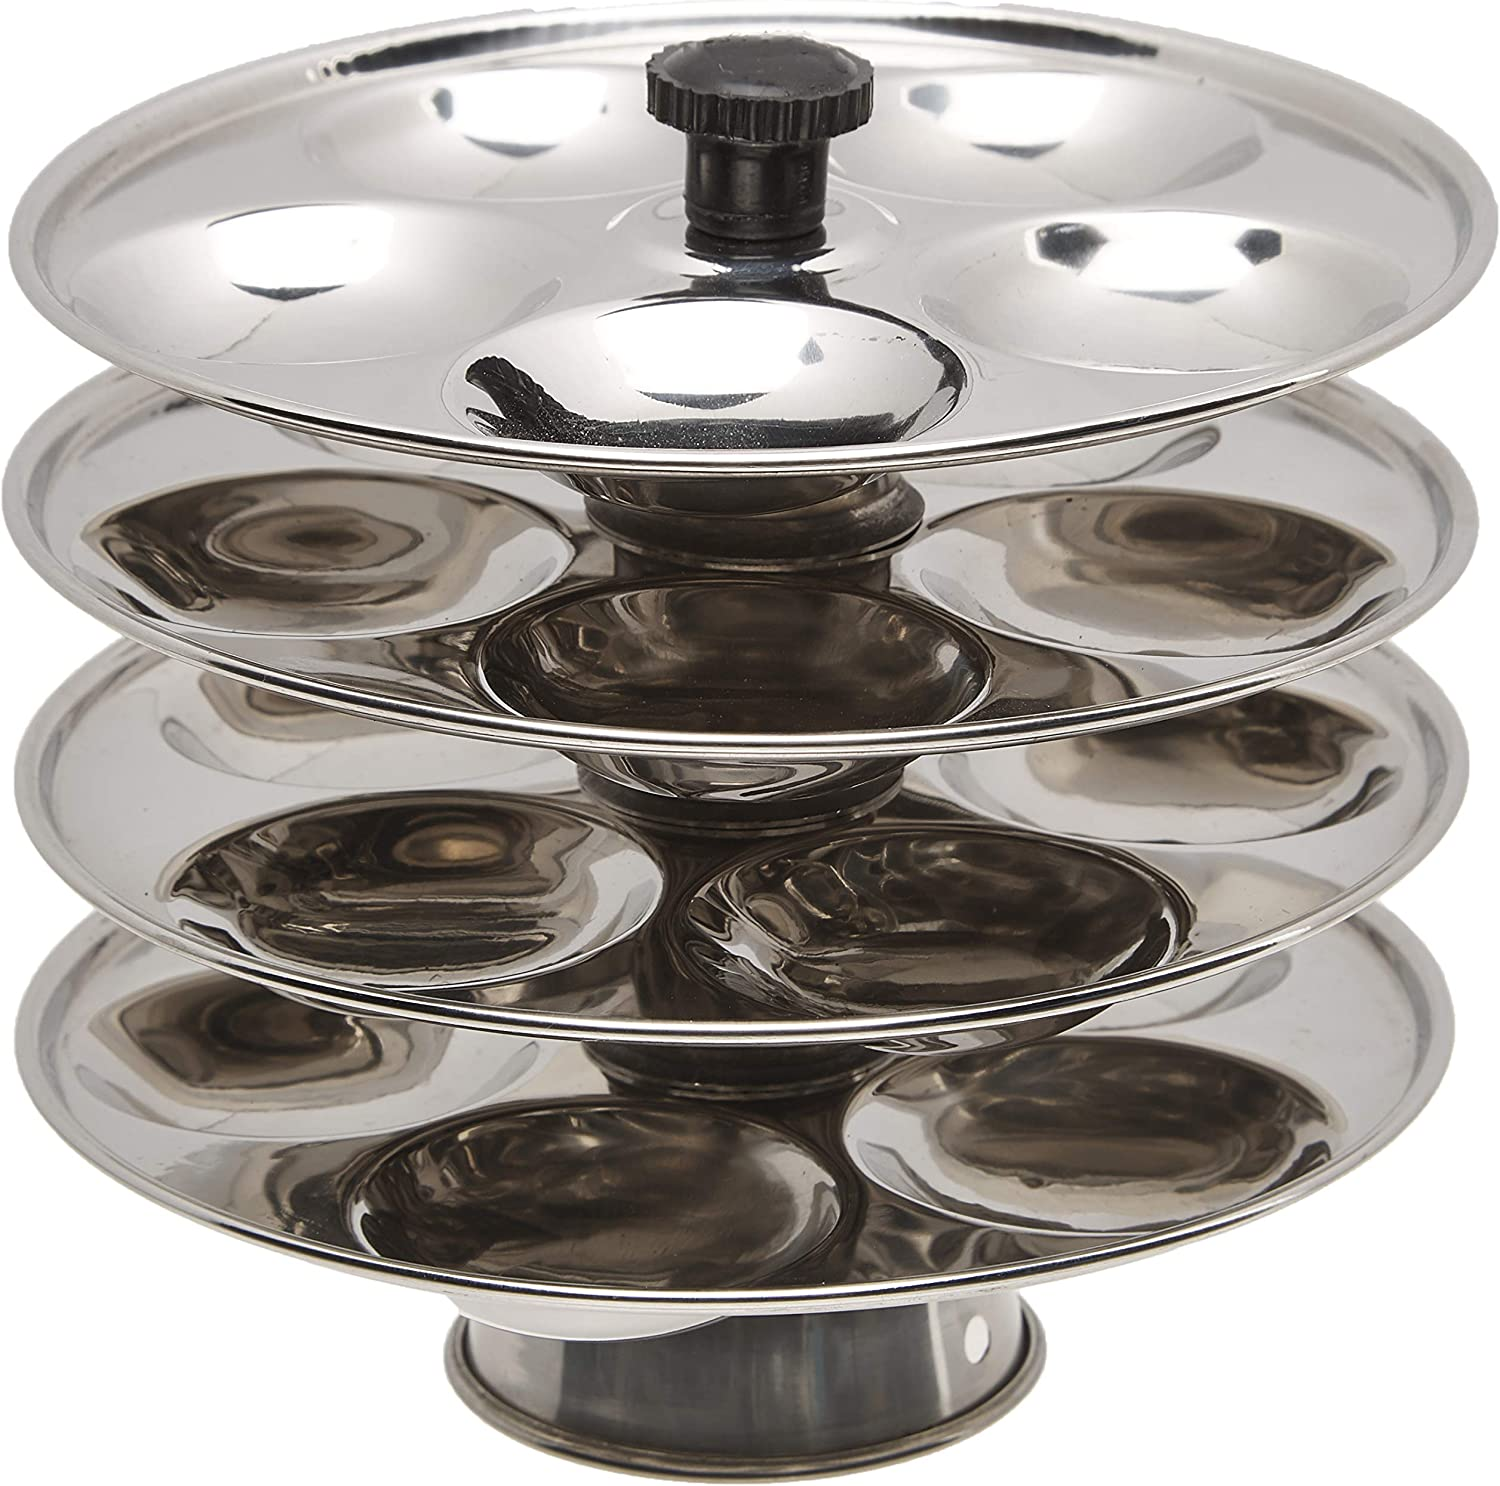 Tabakh 4-Rack Stainless Steel Baby Mini Idli Stand, Makes 20 Mini Idlys